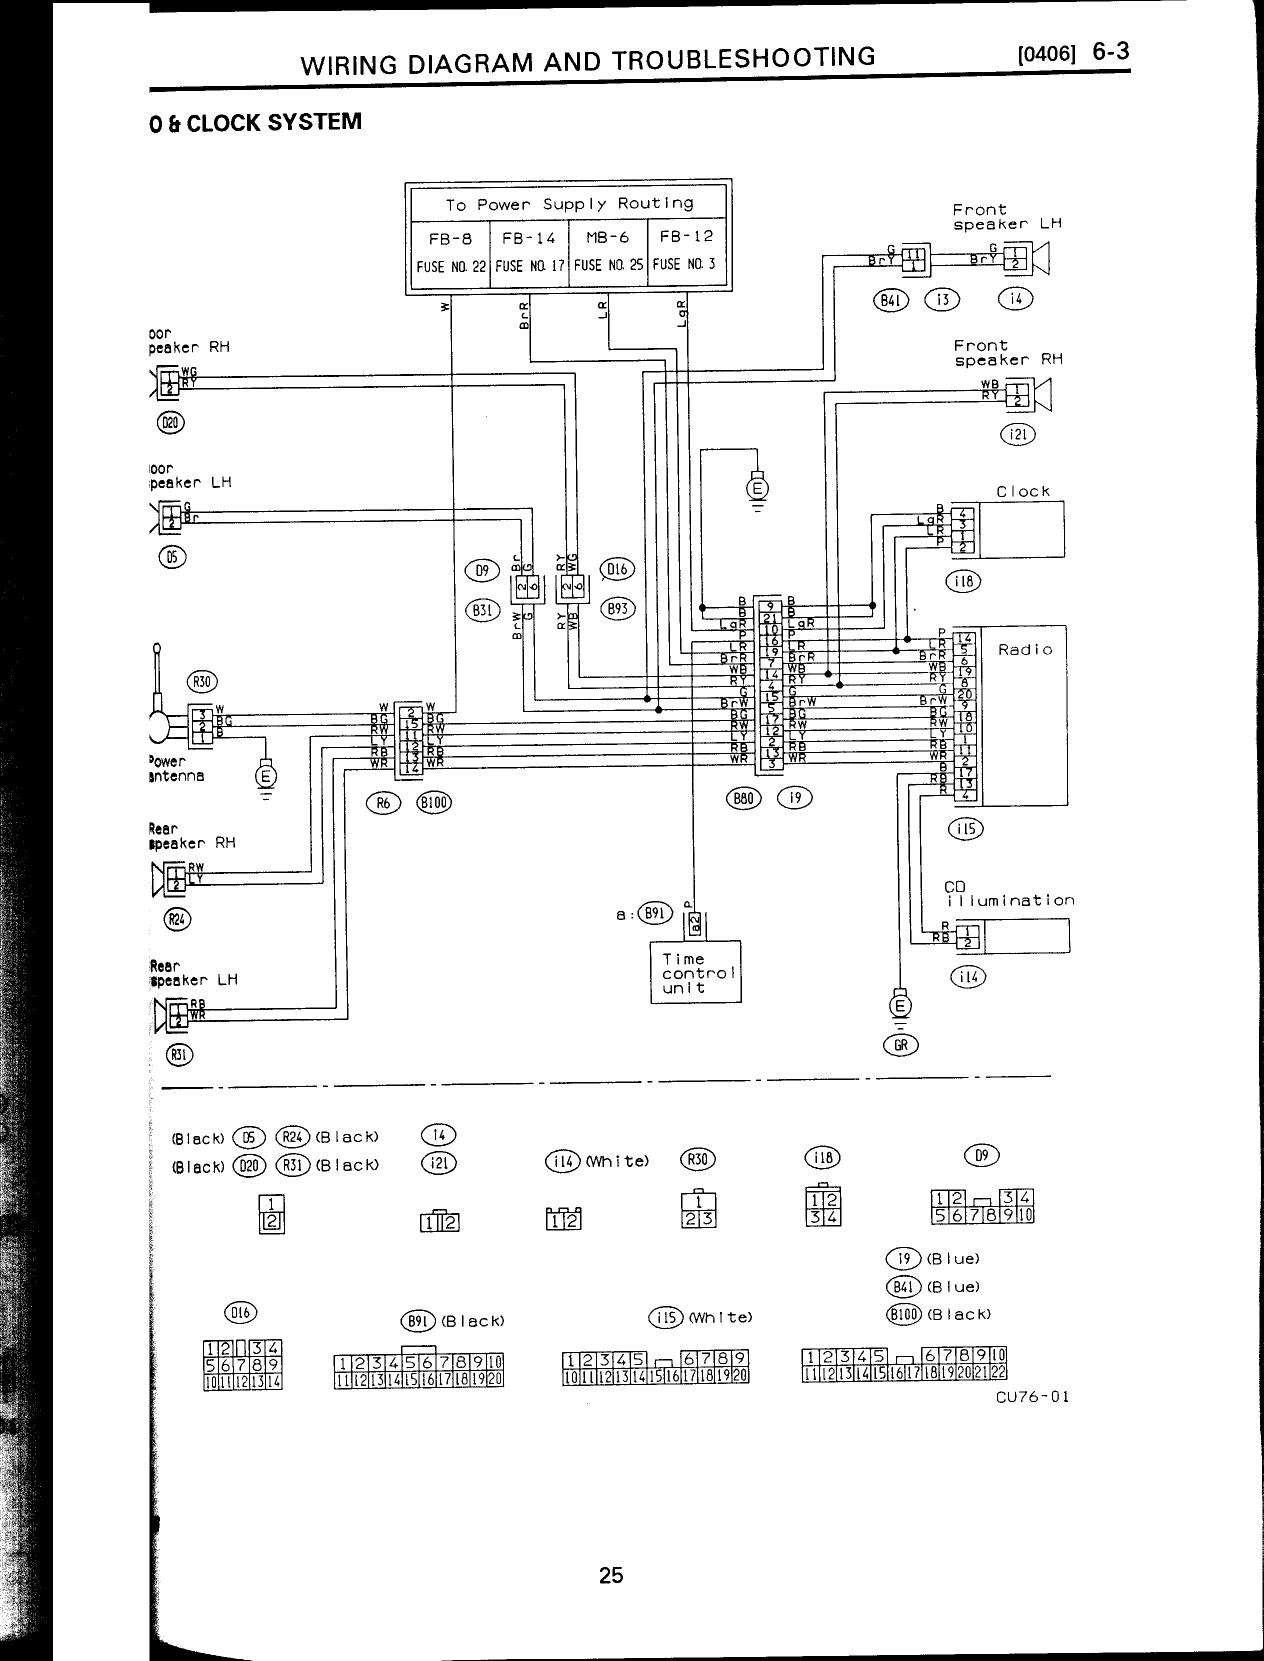 251 j SVXRadioWrg subaru legacy wiring diagram radio wiring diagram and schematic Subaru Legacy Wiring-Diagram Regulator at fashall.co